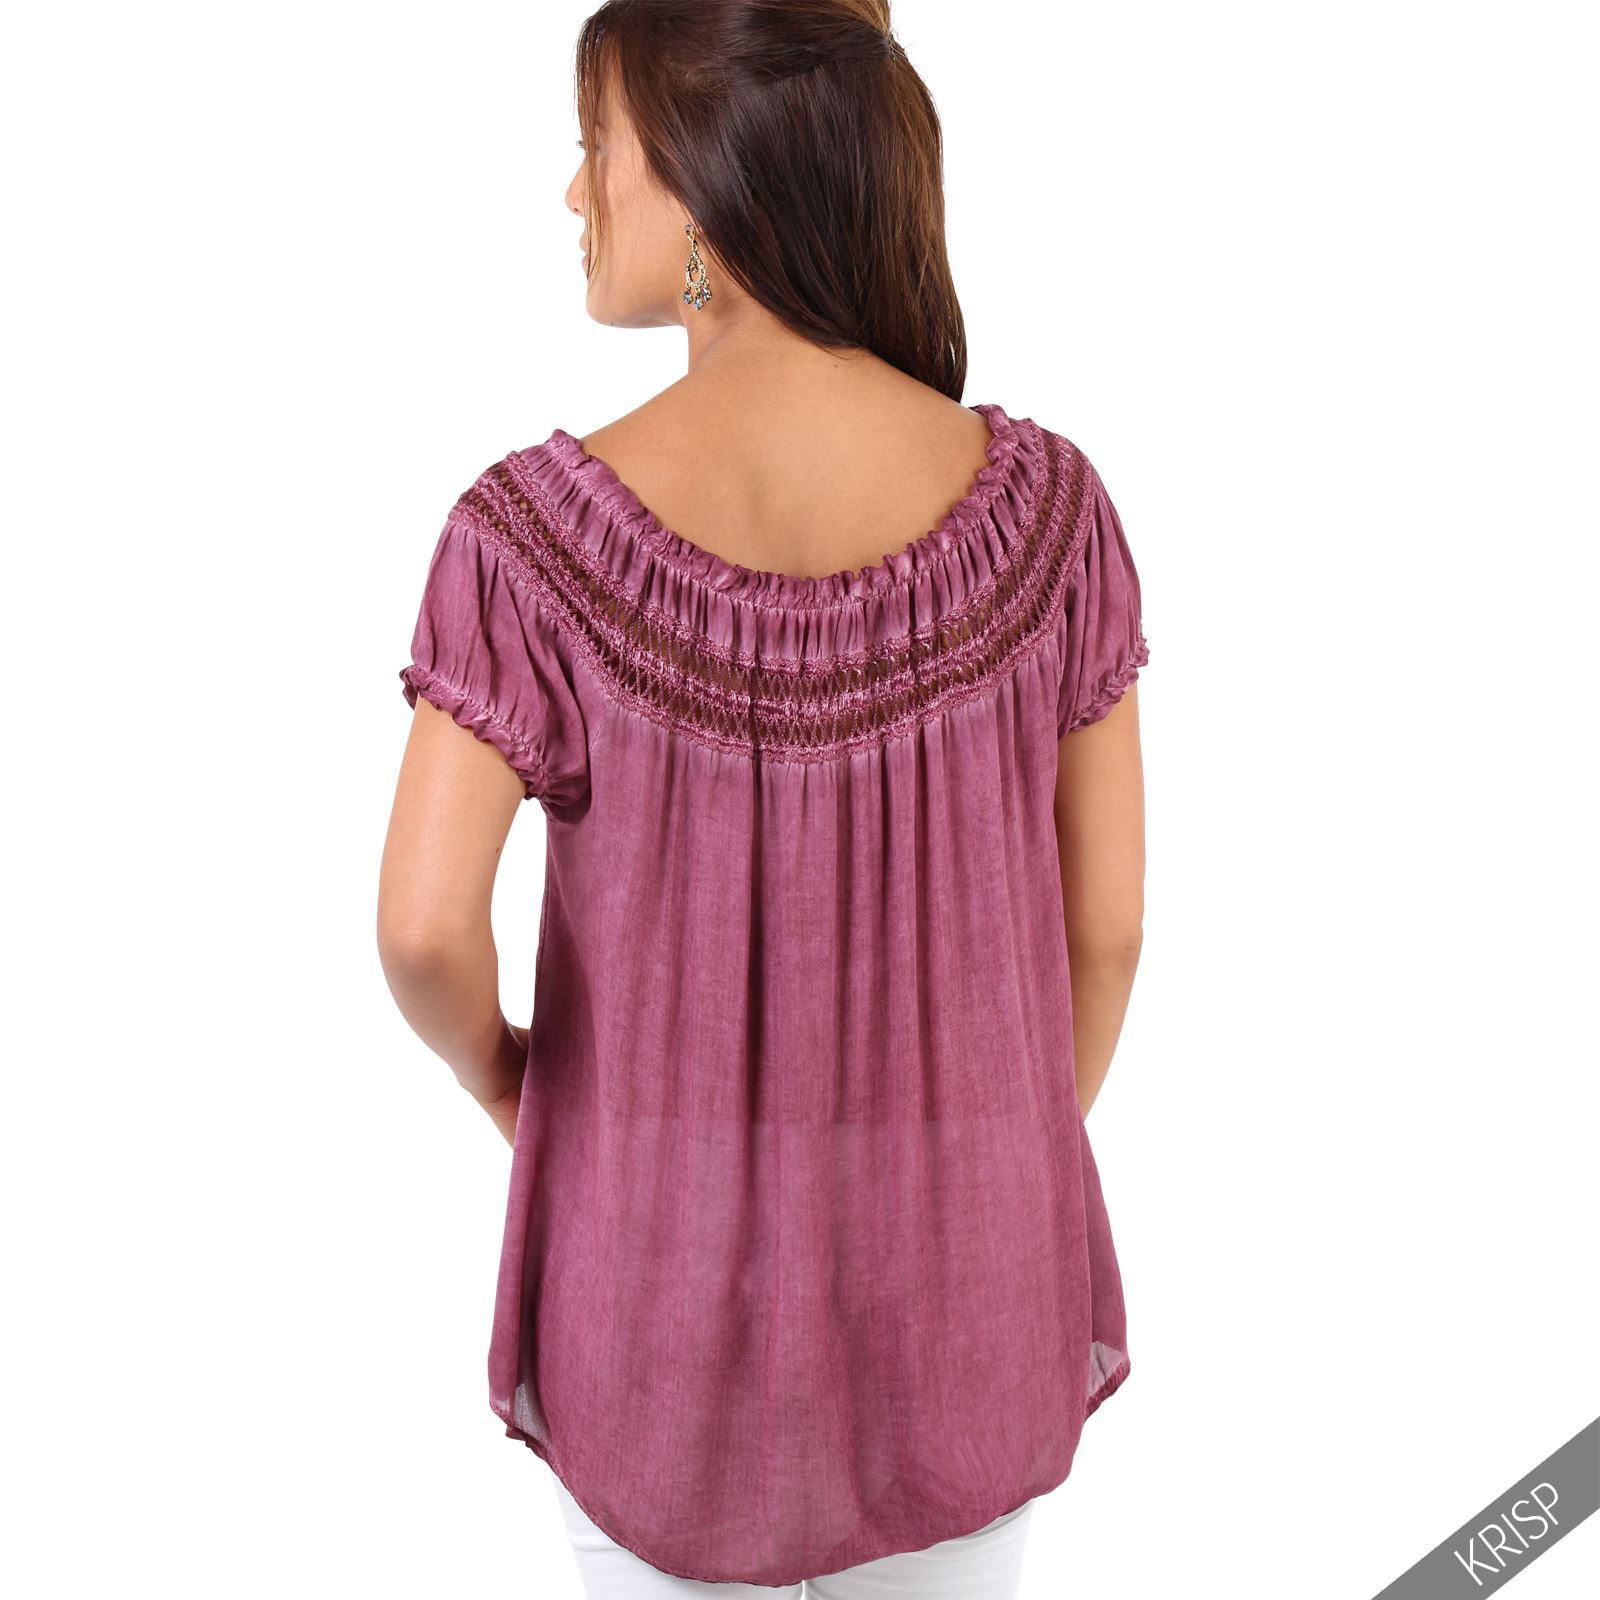 Womens-Off-Shoulder-Blouse-Gypsy-Boho-Cotton-T-Shirt-Top-Tunic-Summer-Loose-Fit thumbnail 17